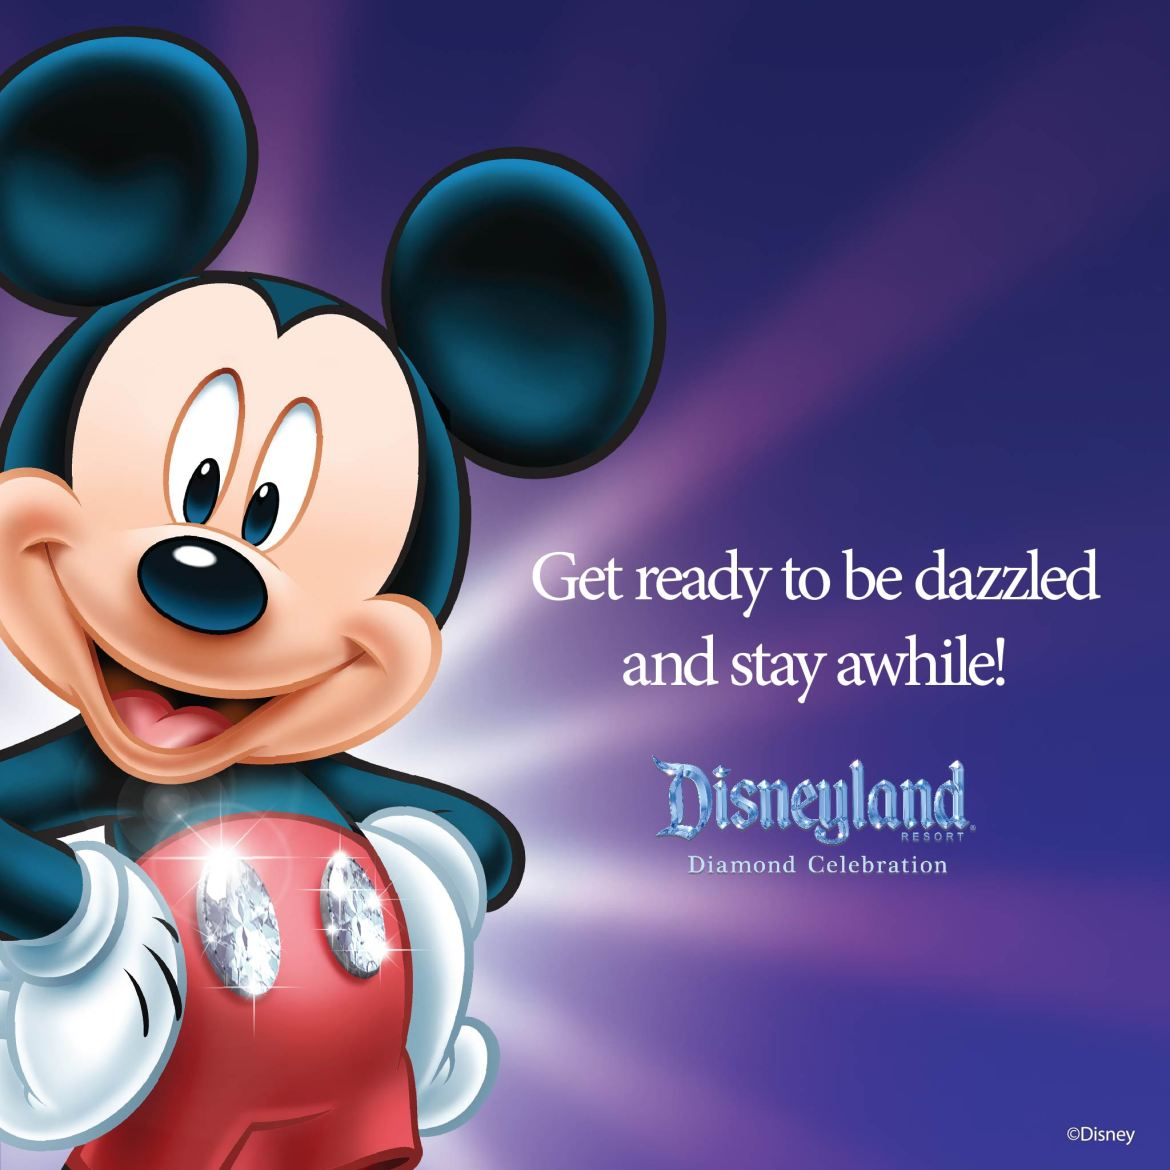 Save on Stays at the Disneyland Resort in Early 2016